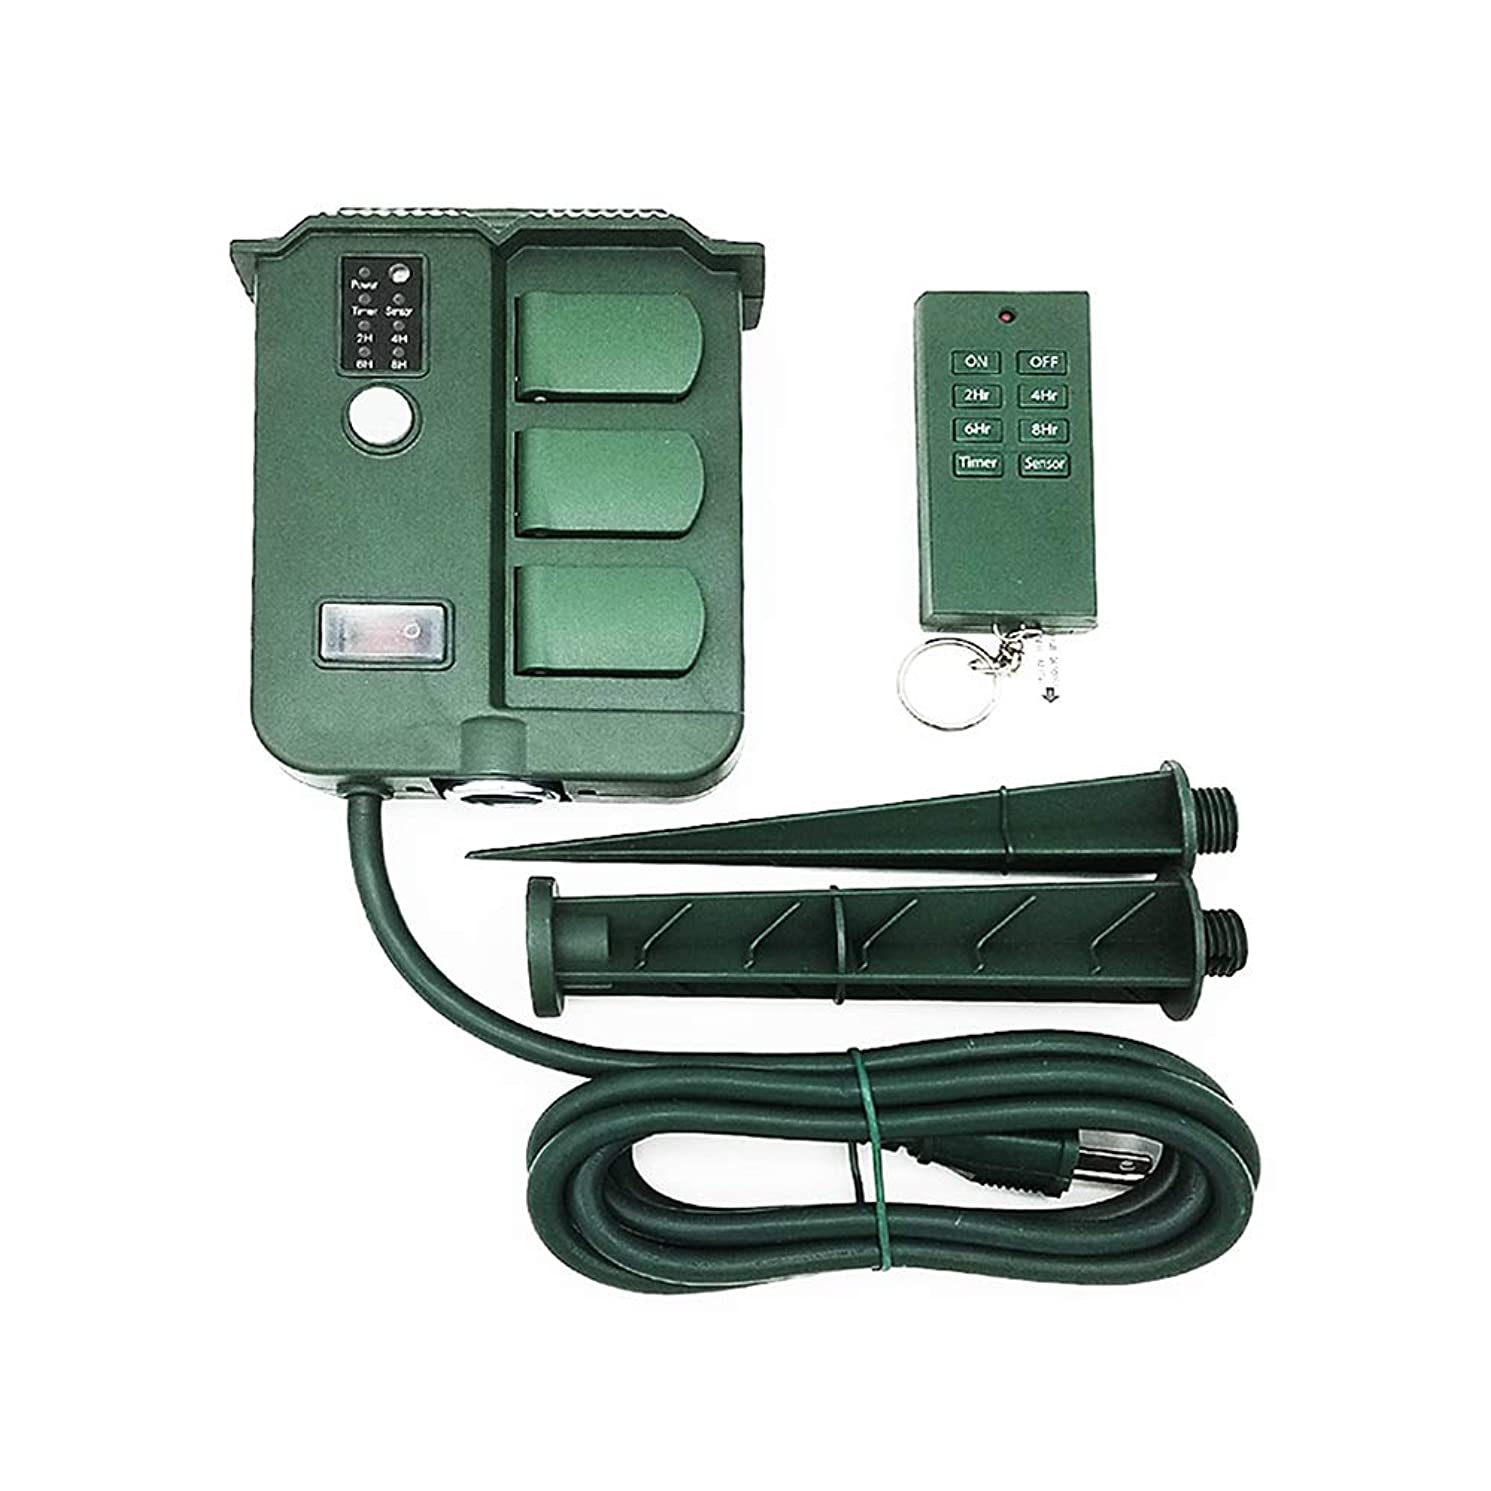 Uninex Remote Control 6 Outlet Digital Timer Weatherproof Yard Stake Outdoor 6 Ft Cord Safety Flip Covers UL